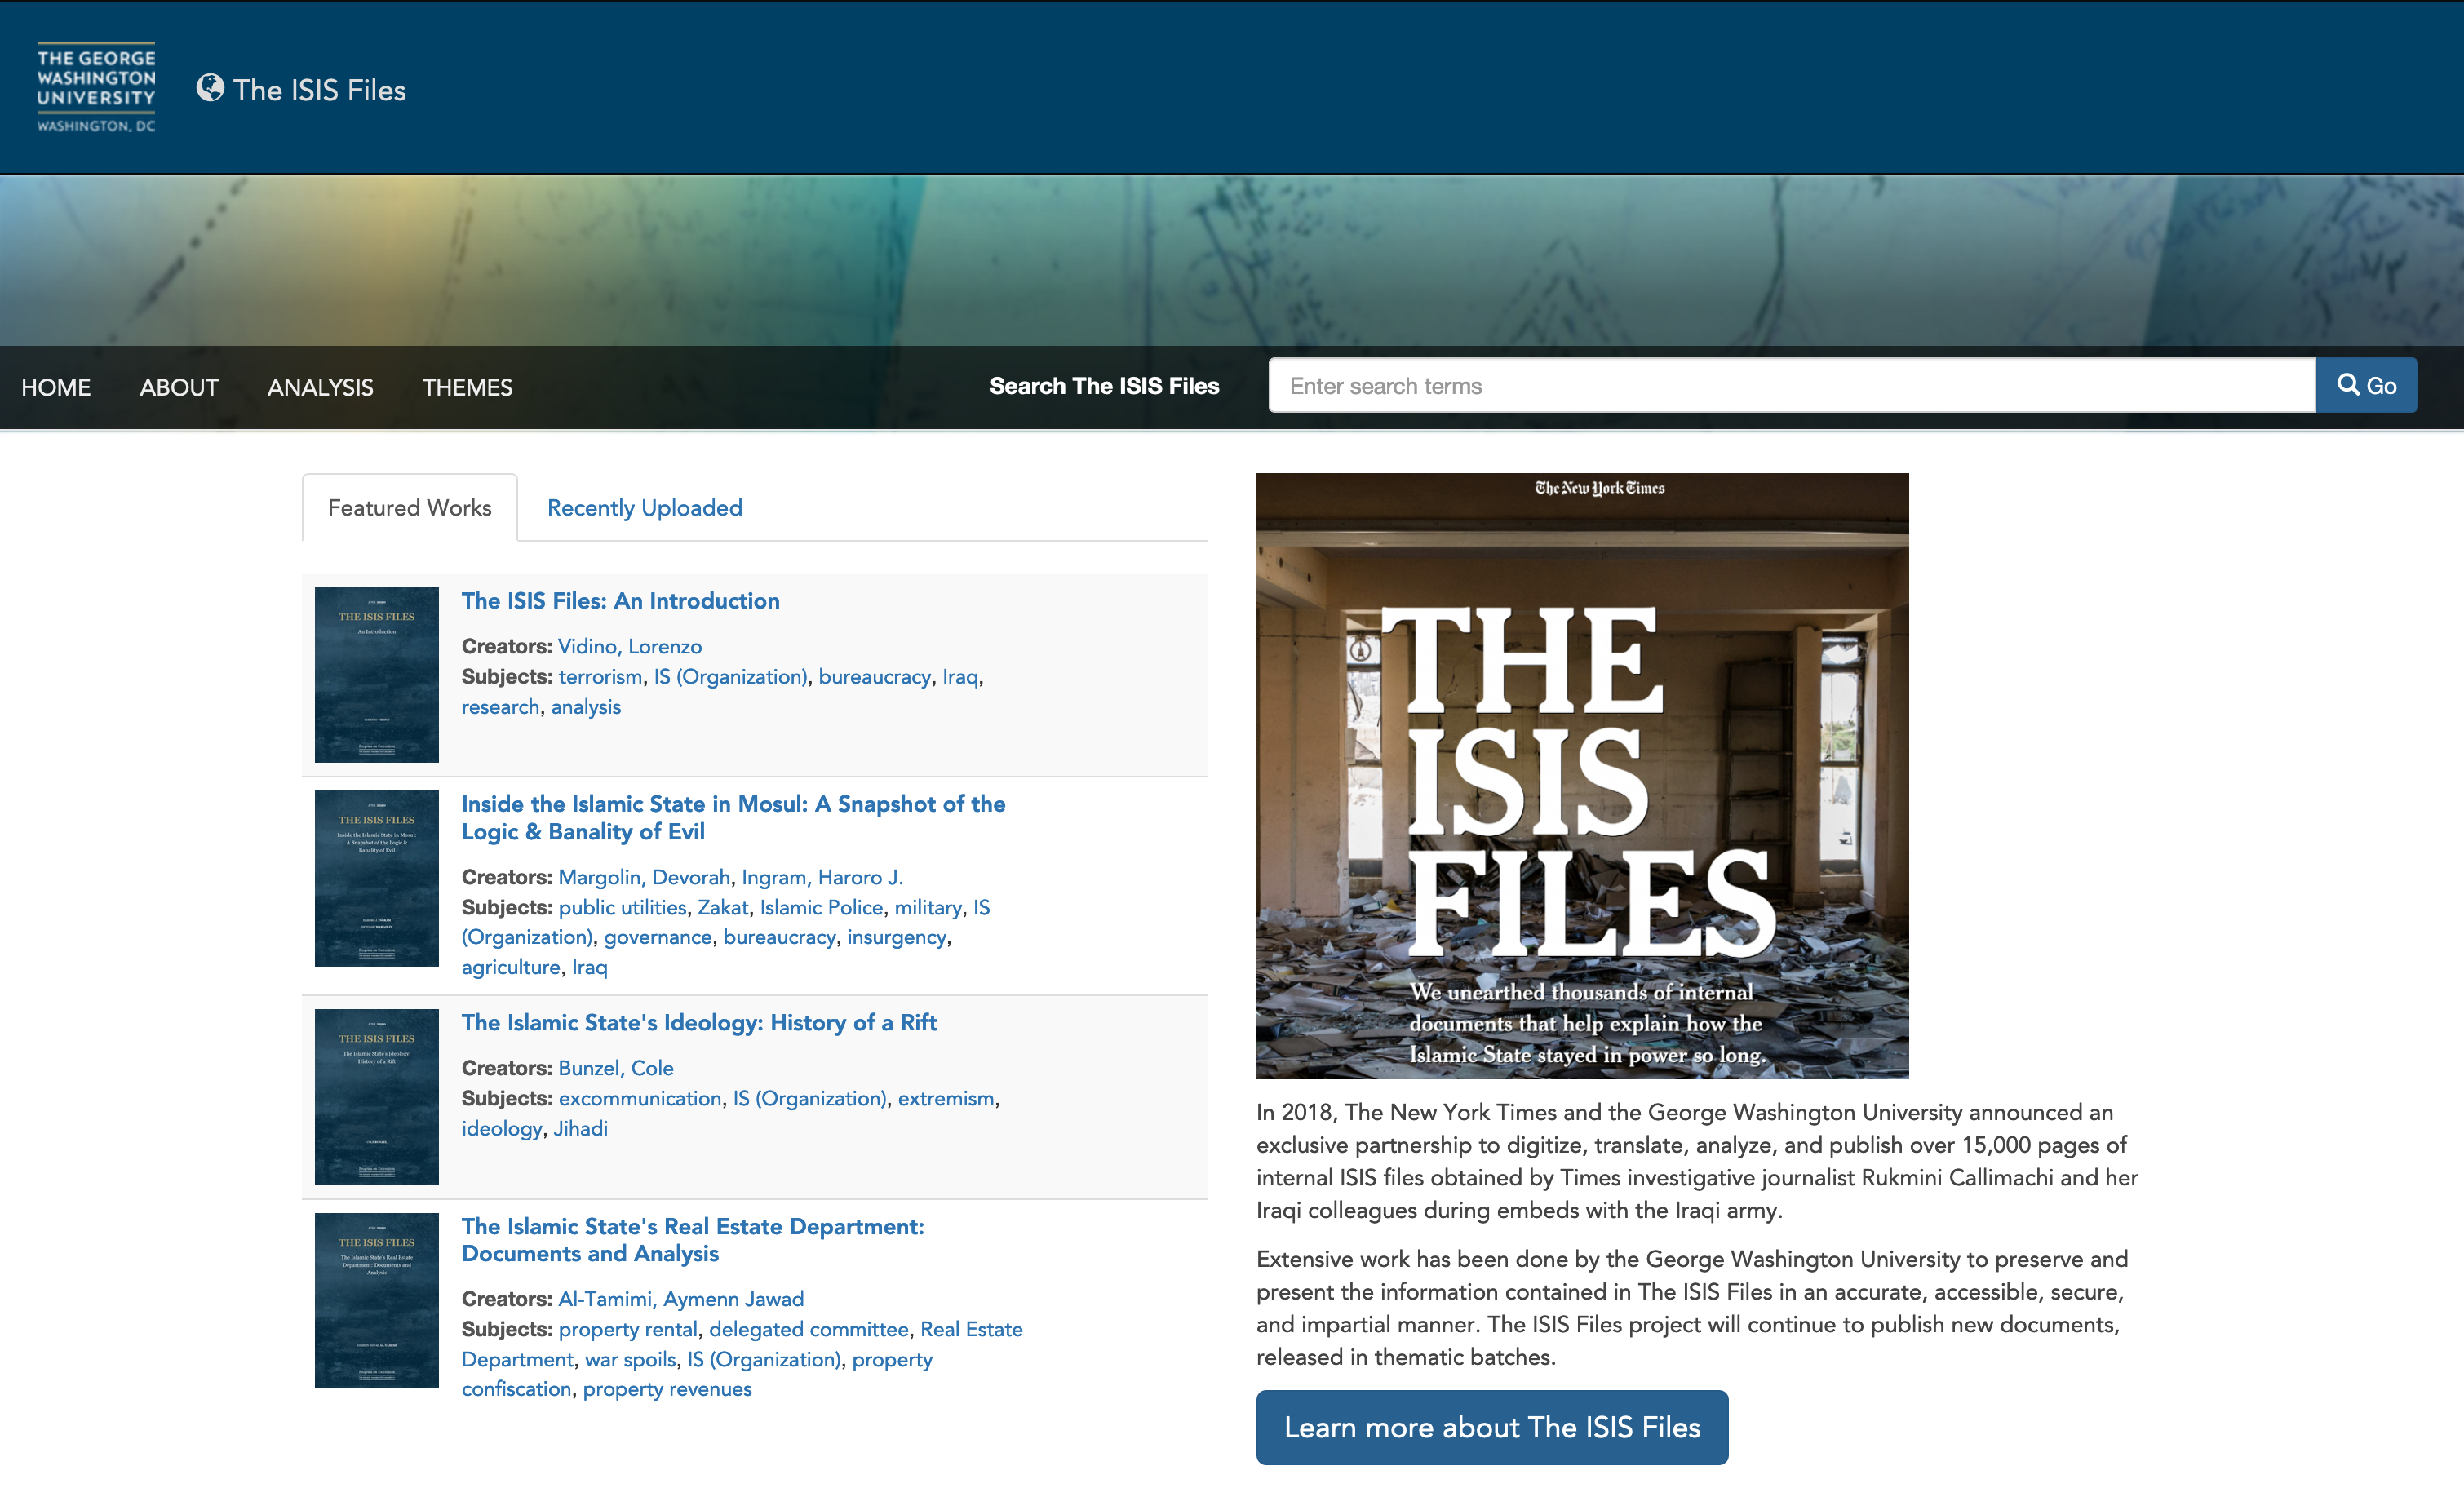 Home page of ISIS Files website